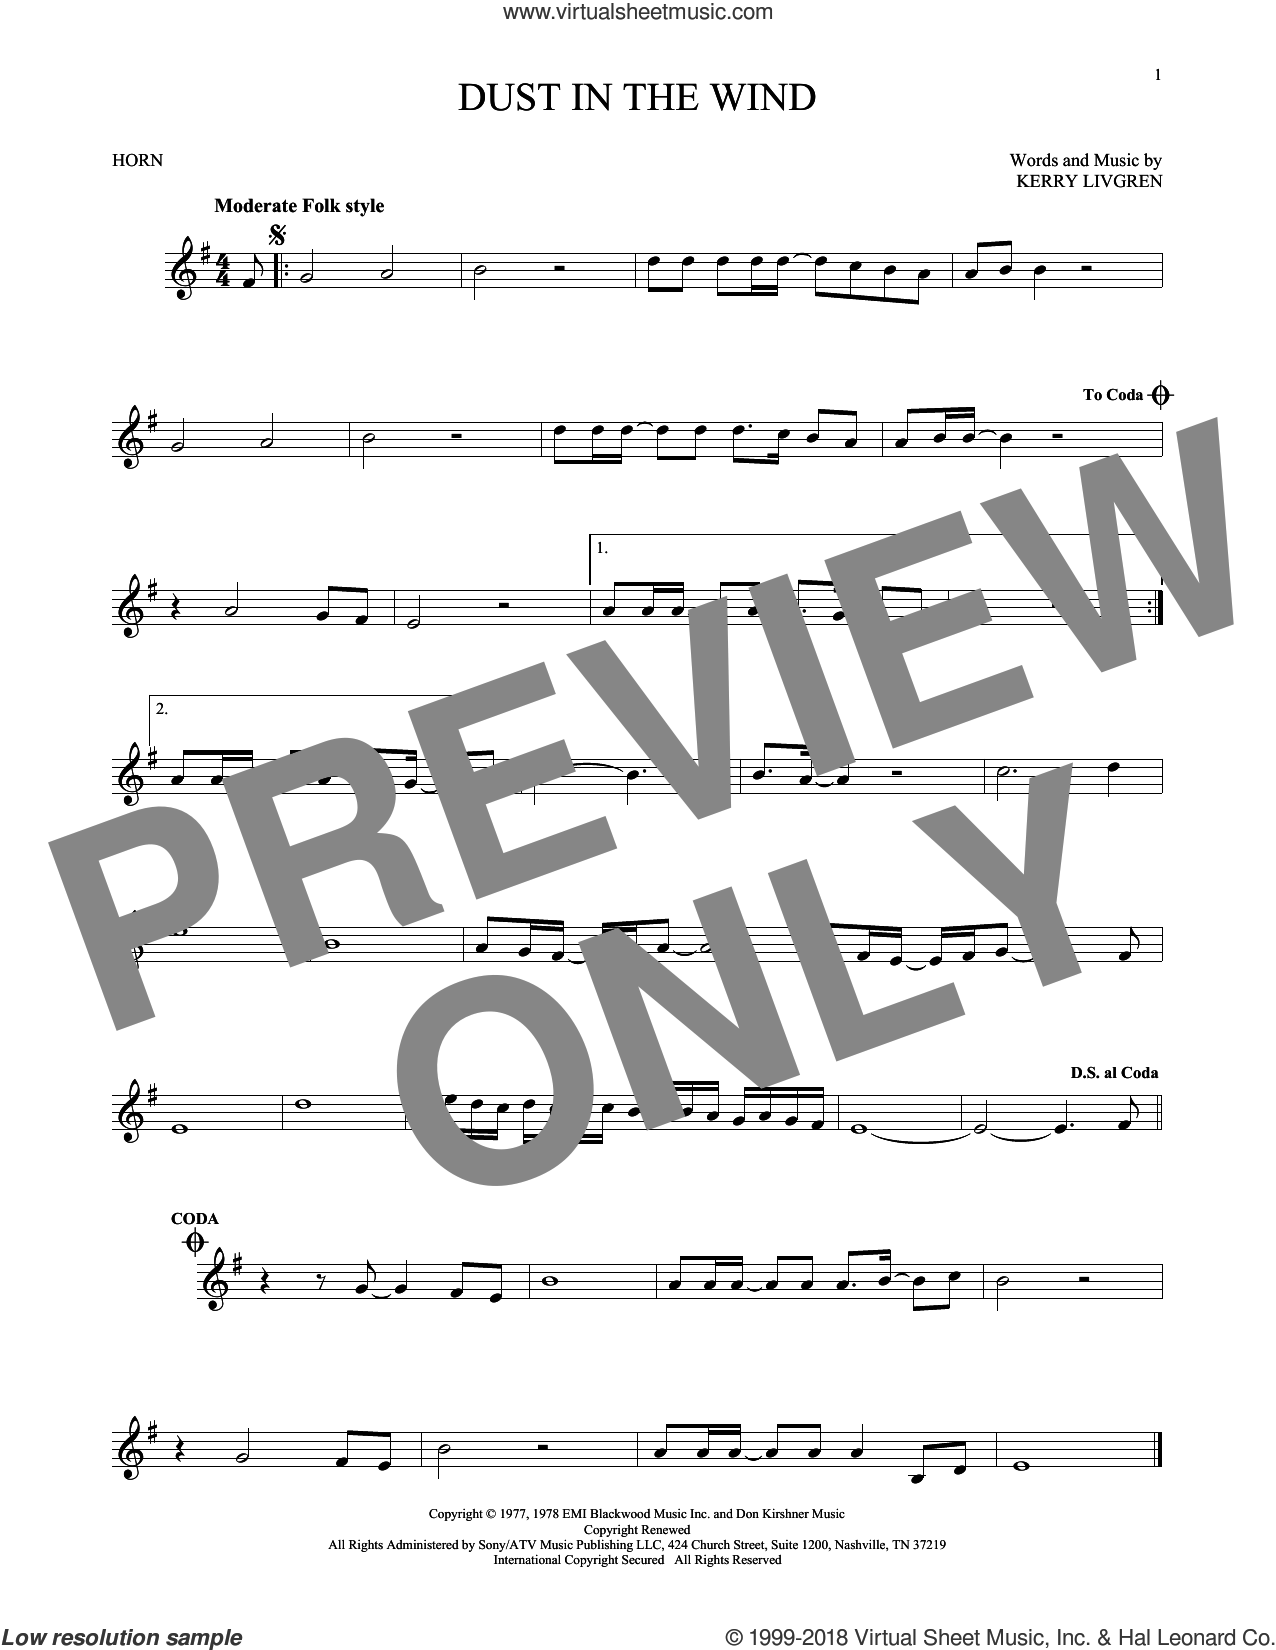 Dust In The Wind sheet music for horn solo by Kansas and Kerry Livgren, intermediate skill level